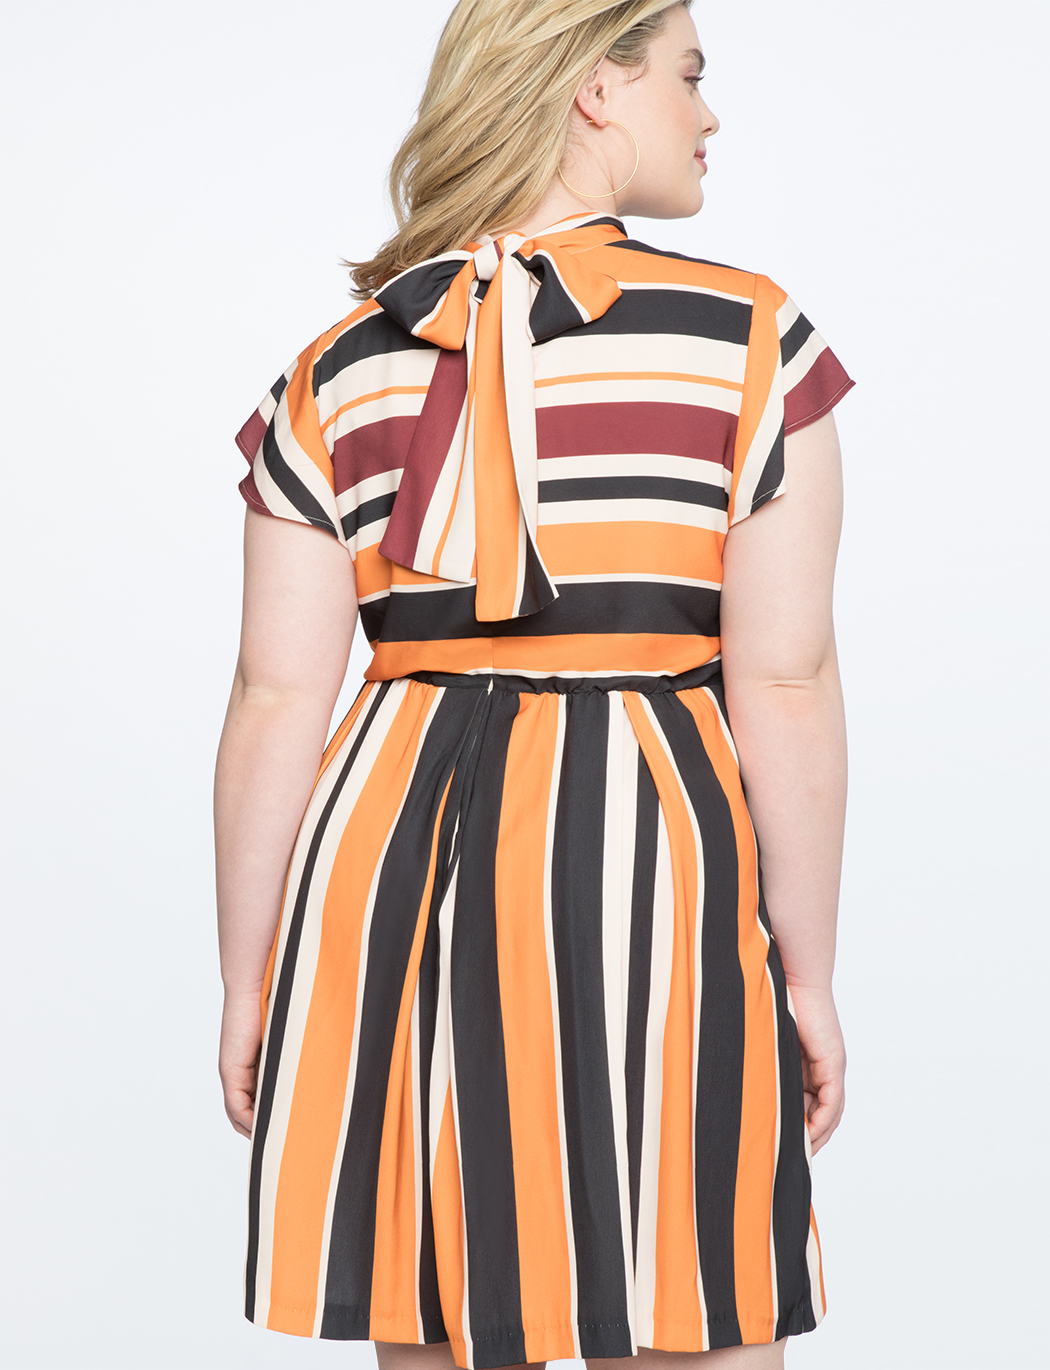 Opposing Stripes Tie Back Dress